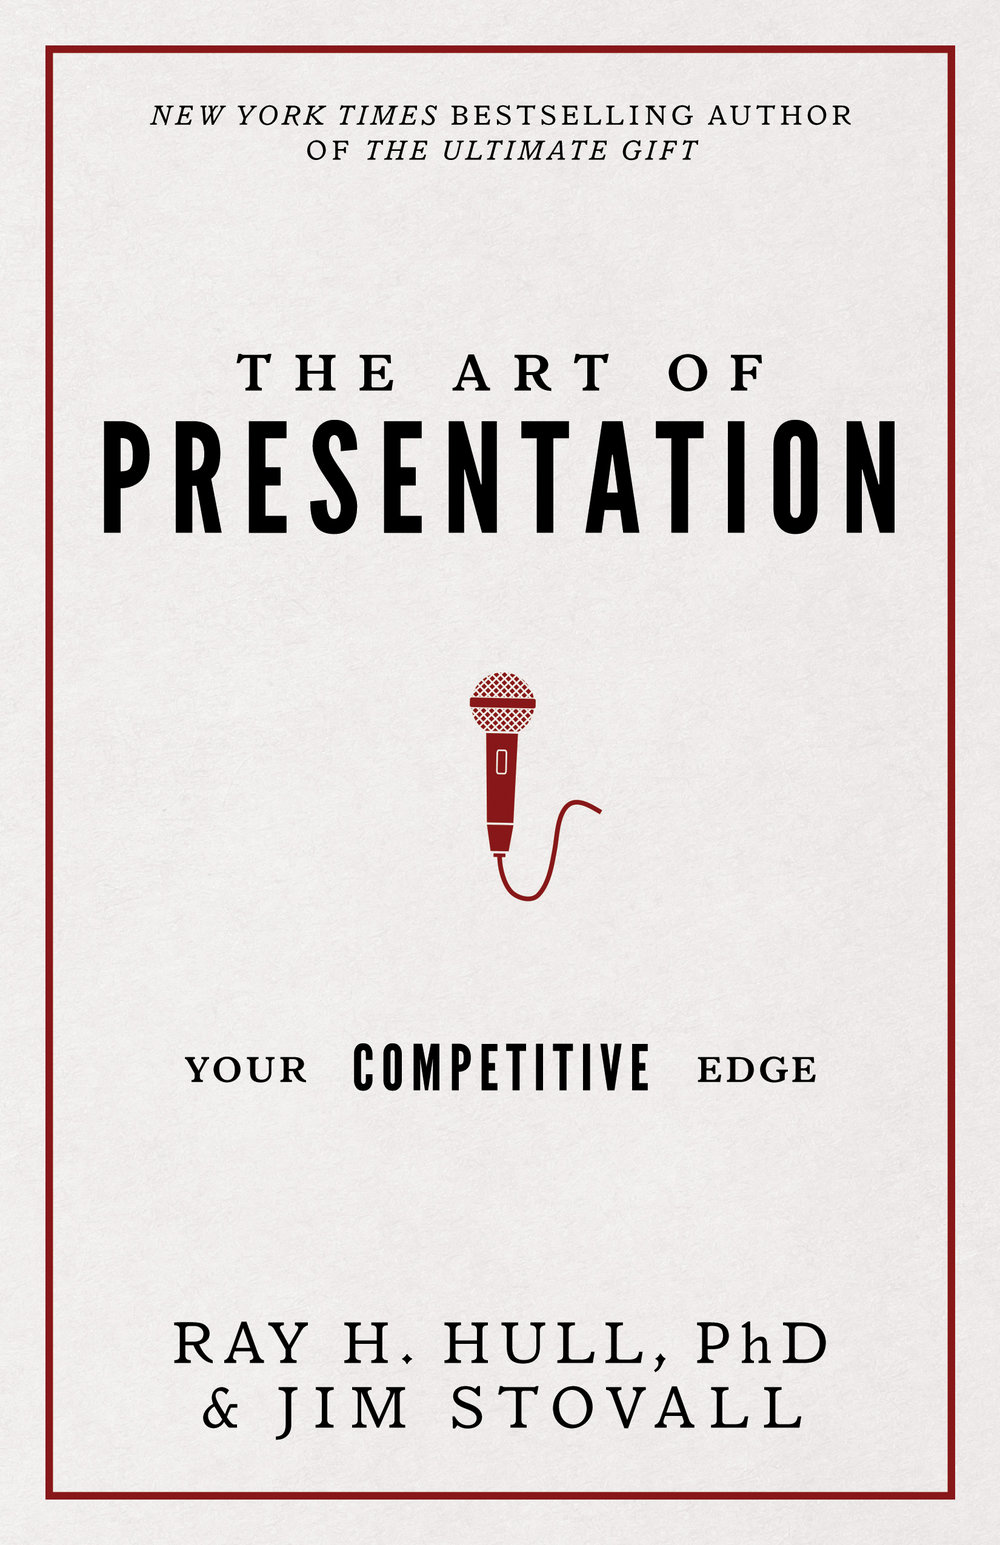 The Art of Presentation - By ray h. hull, phd & Jim stovall